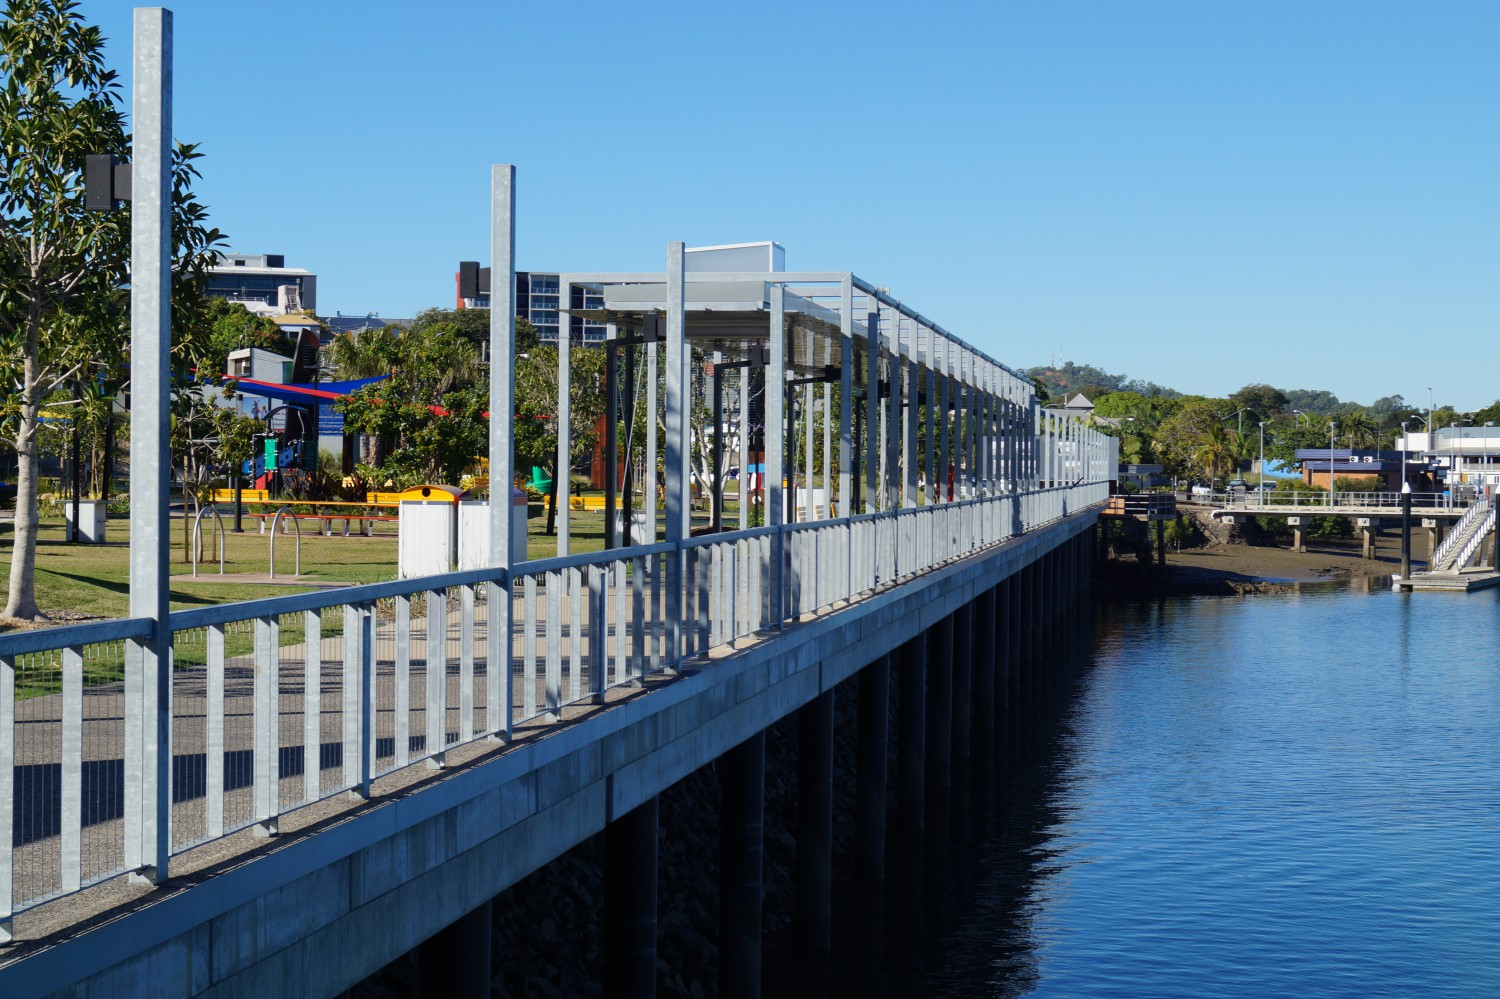 East Shores Gladstone - waterfront walk